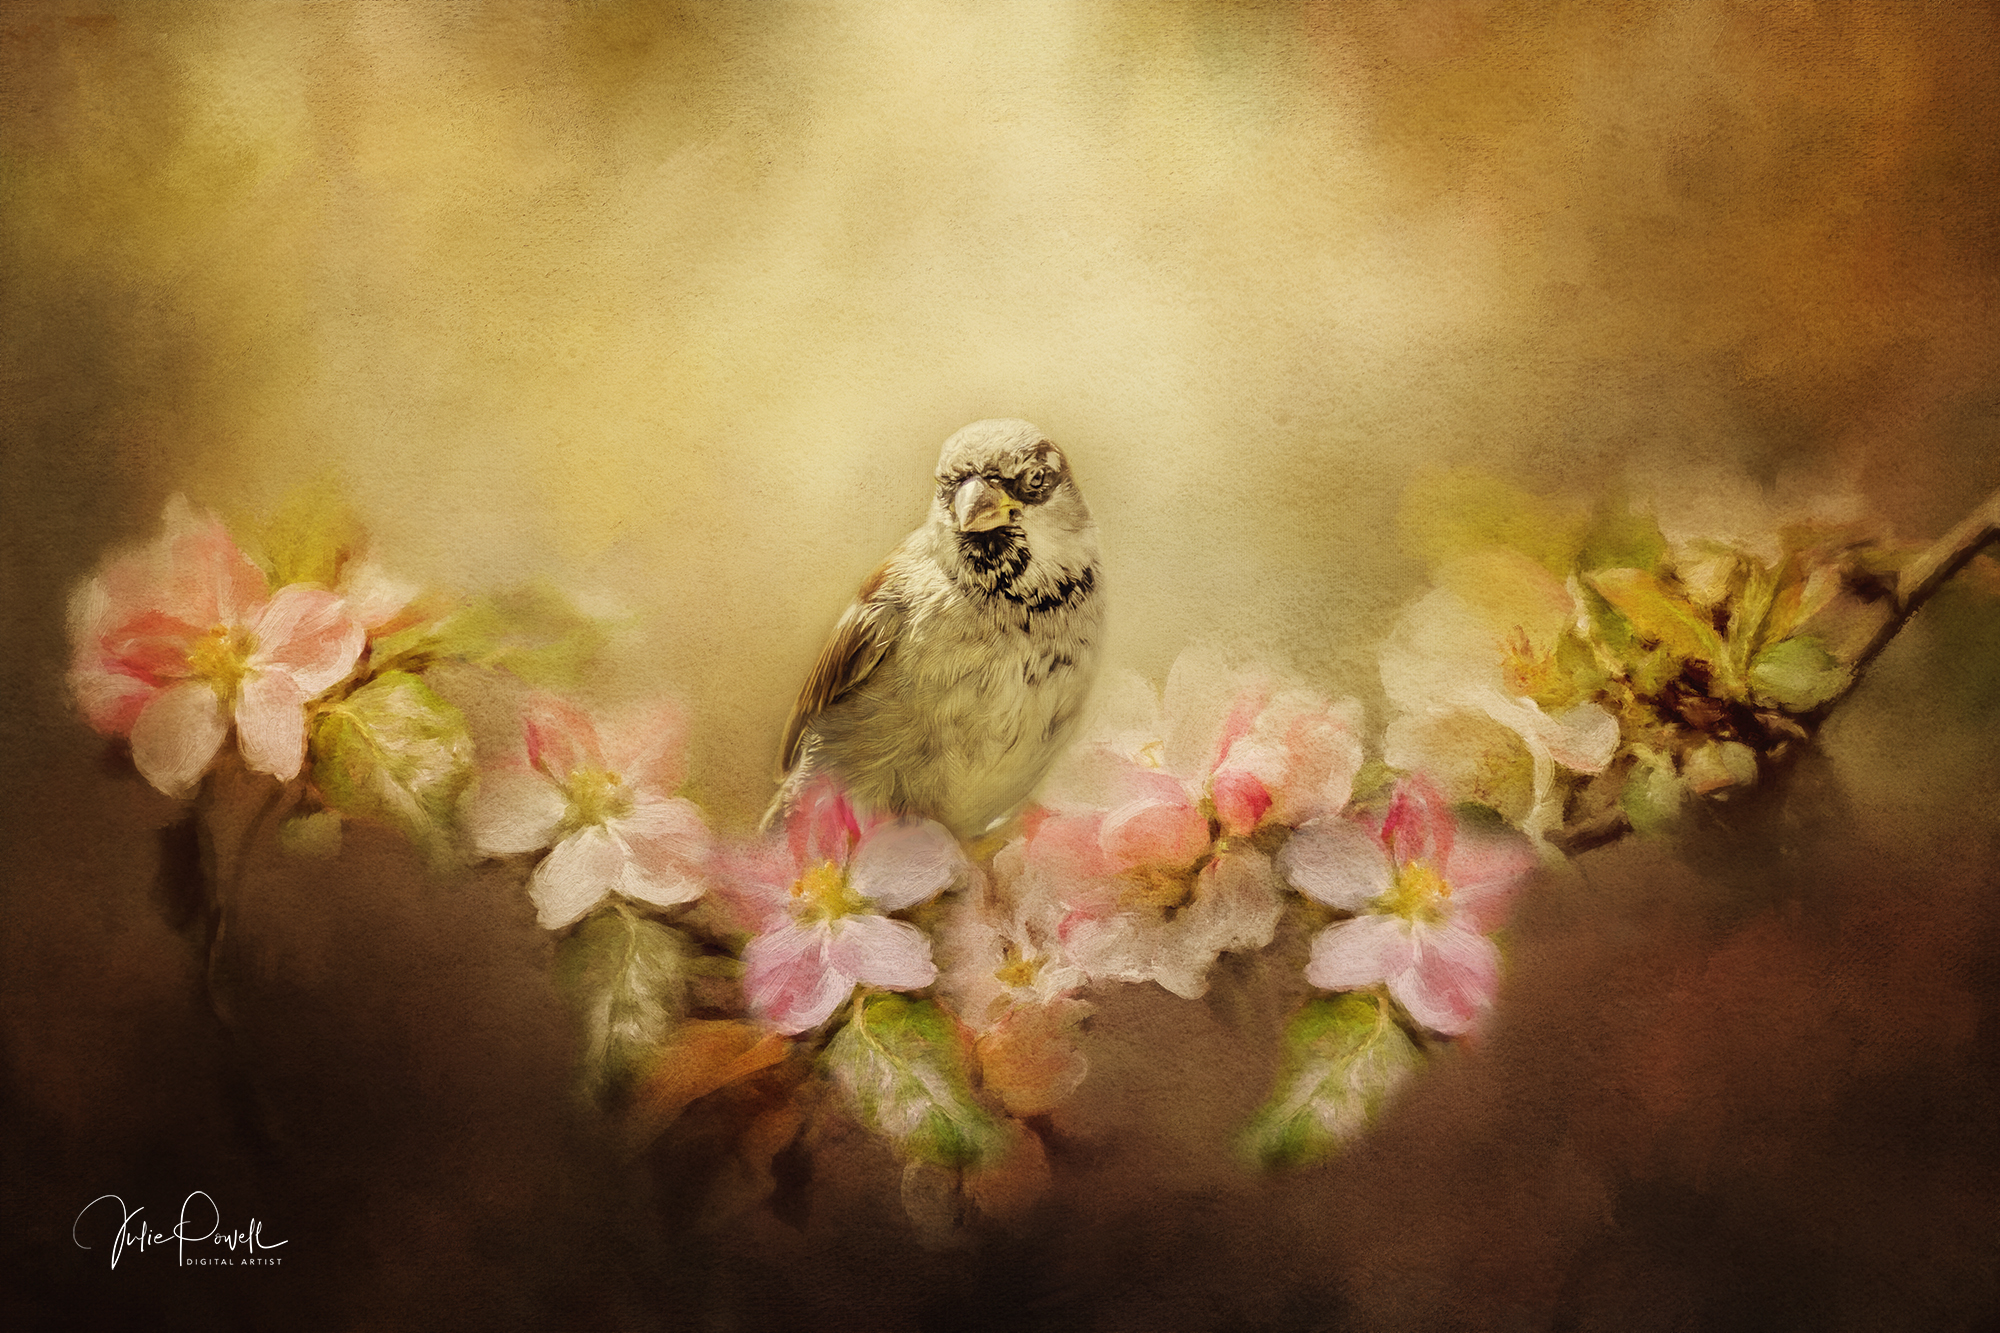 The Birds and Flowers.jpg